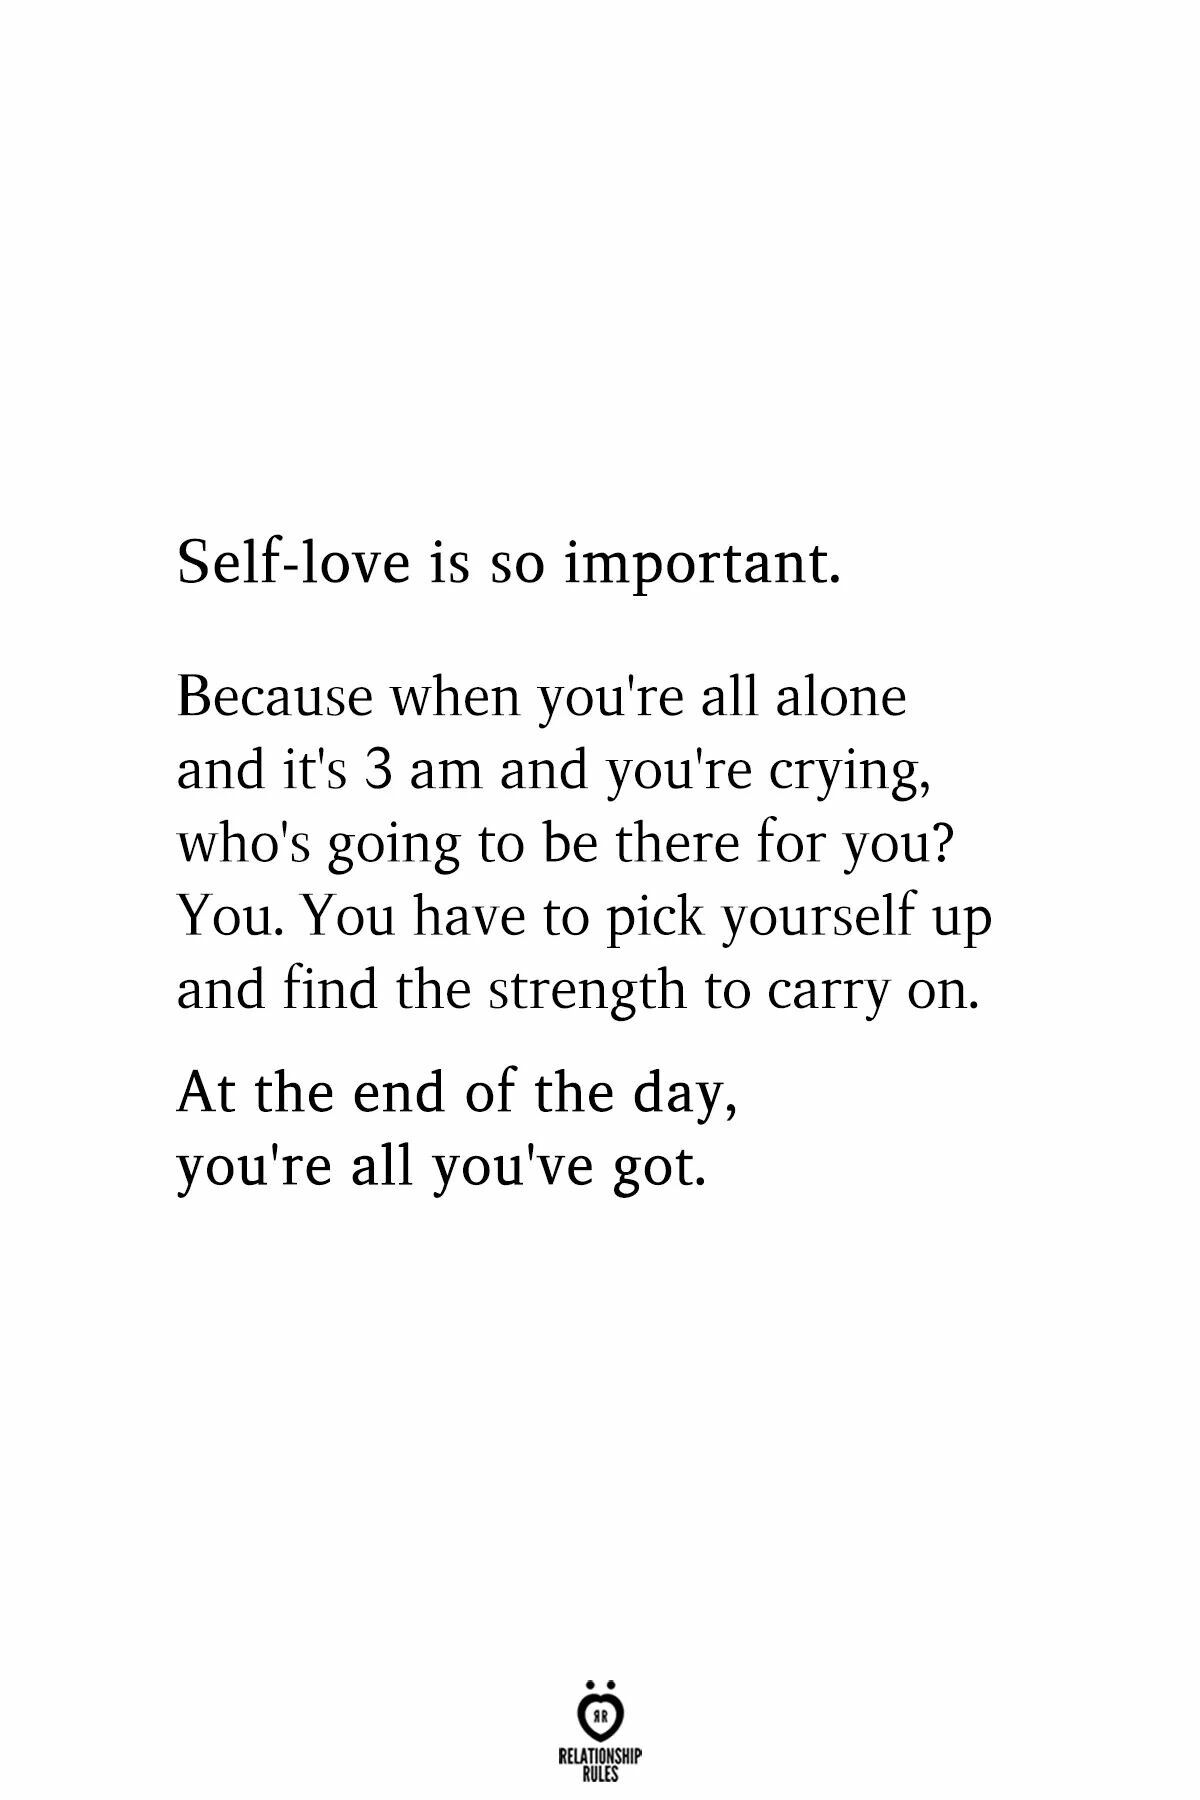 Pin By Mummy Victoria On Words Of Wisdom Be Yourself Quotes Self Love Quotes Self Love Affirmations